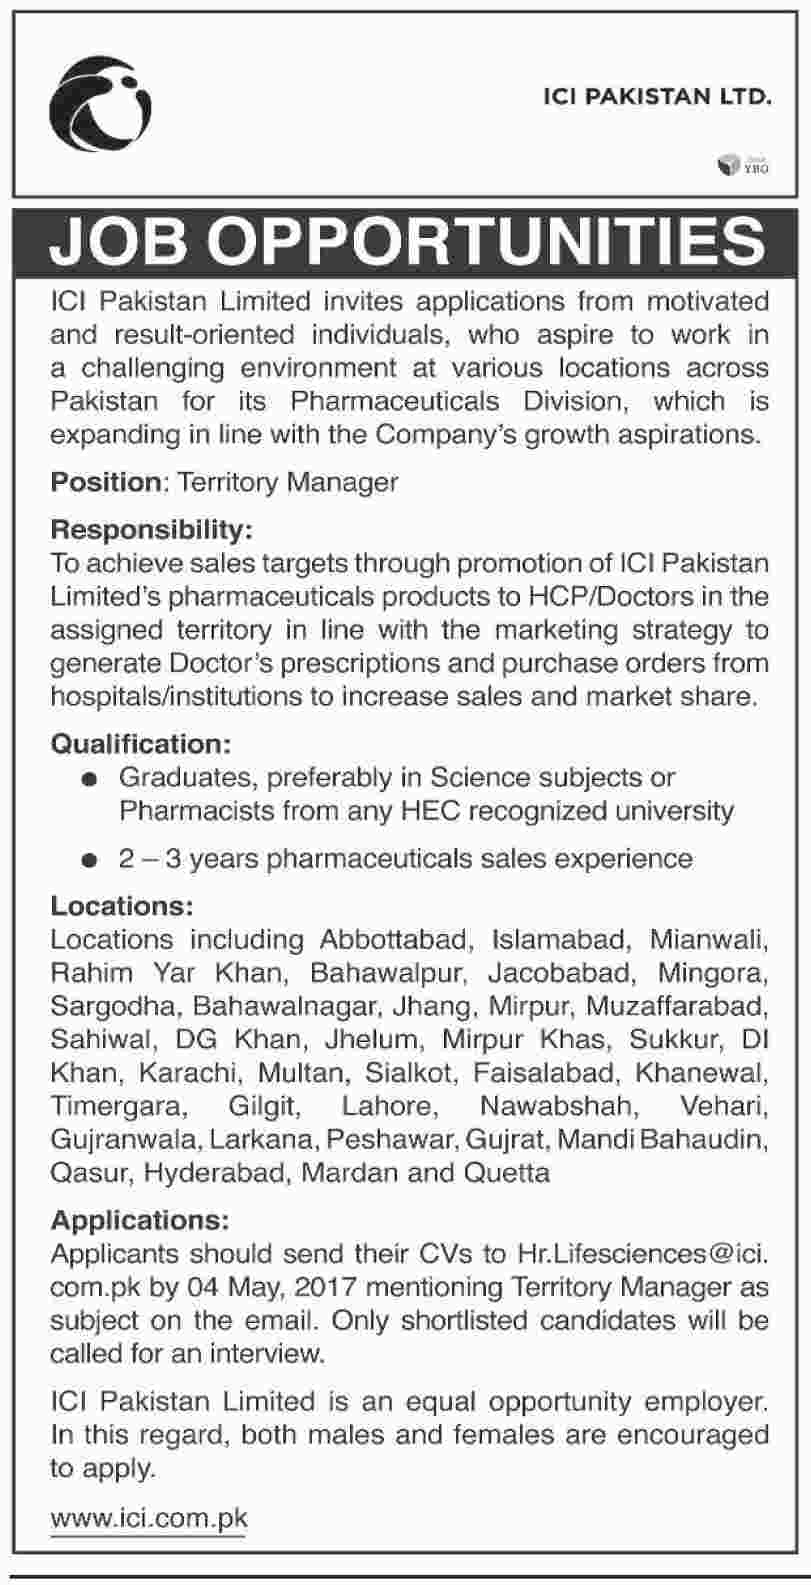 Territory Manager jobs in ICI Pakistan Limited 2 may 2017